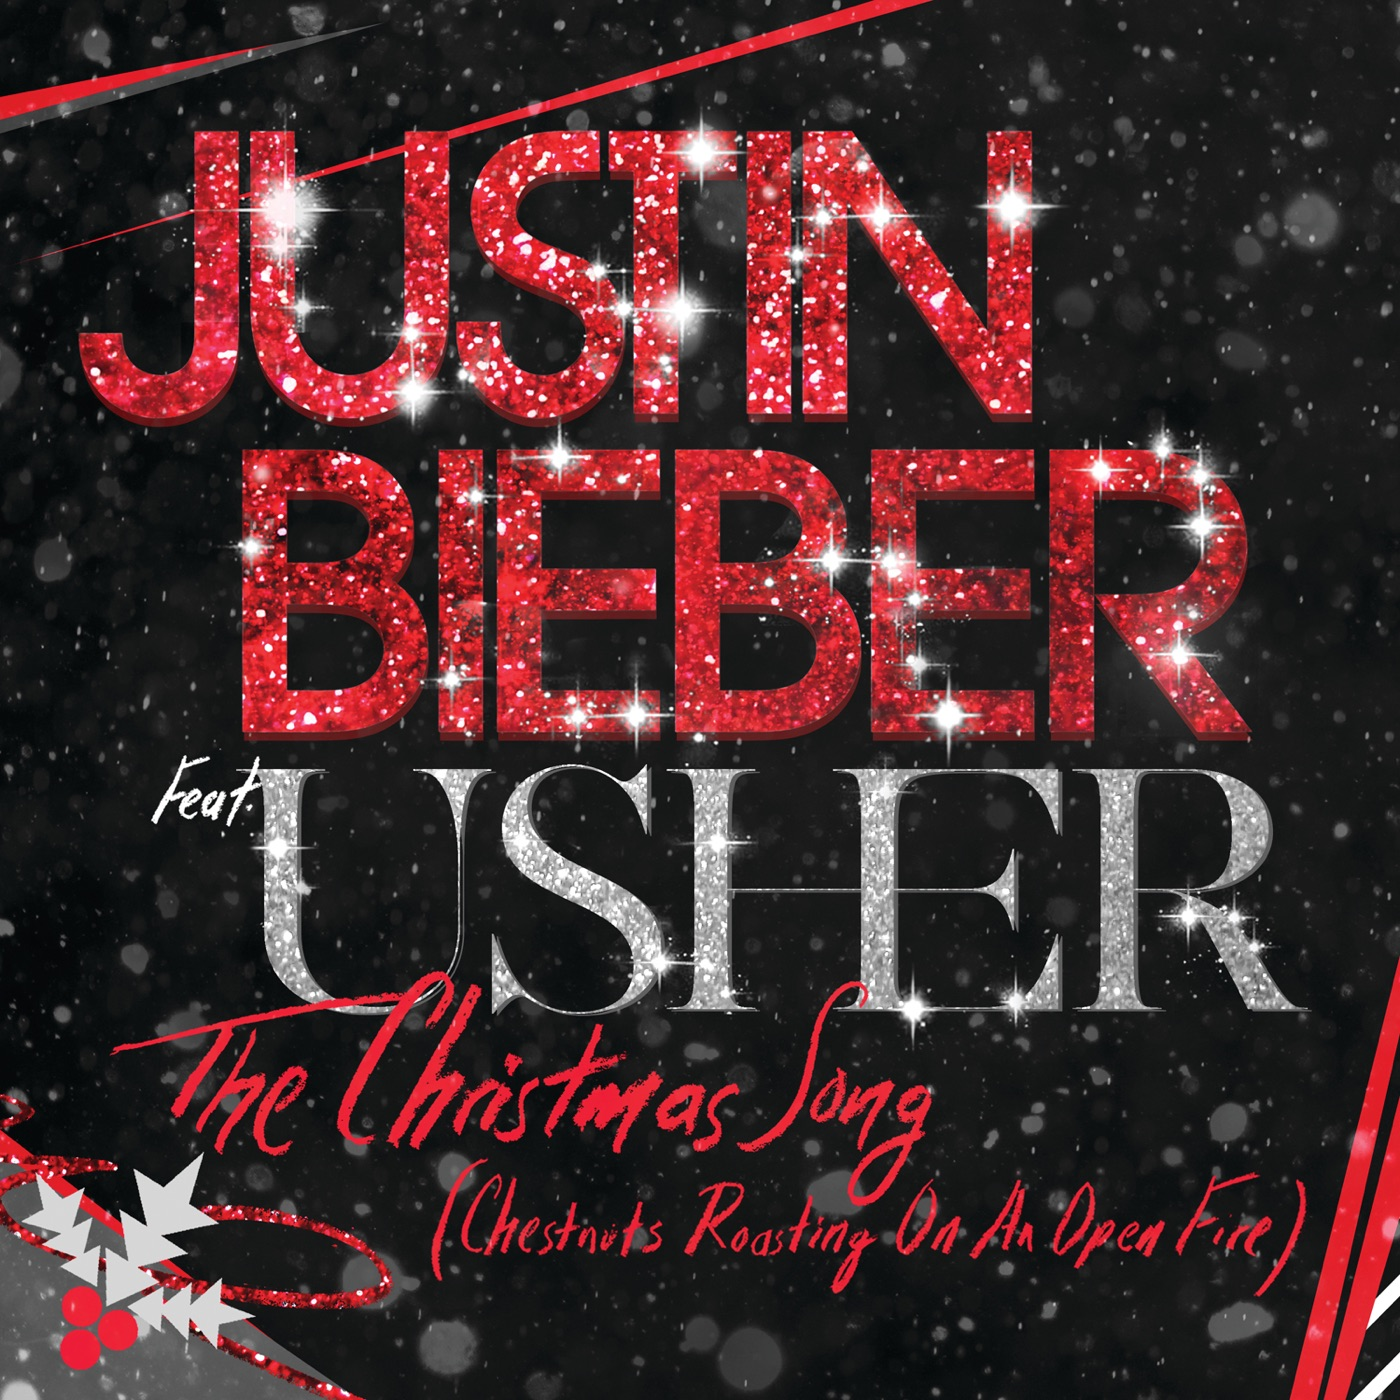 Justin Bieber - The Christmas Song (Chestnuts Roasting On and Open Fire) [feat. Usher] - Single